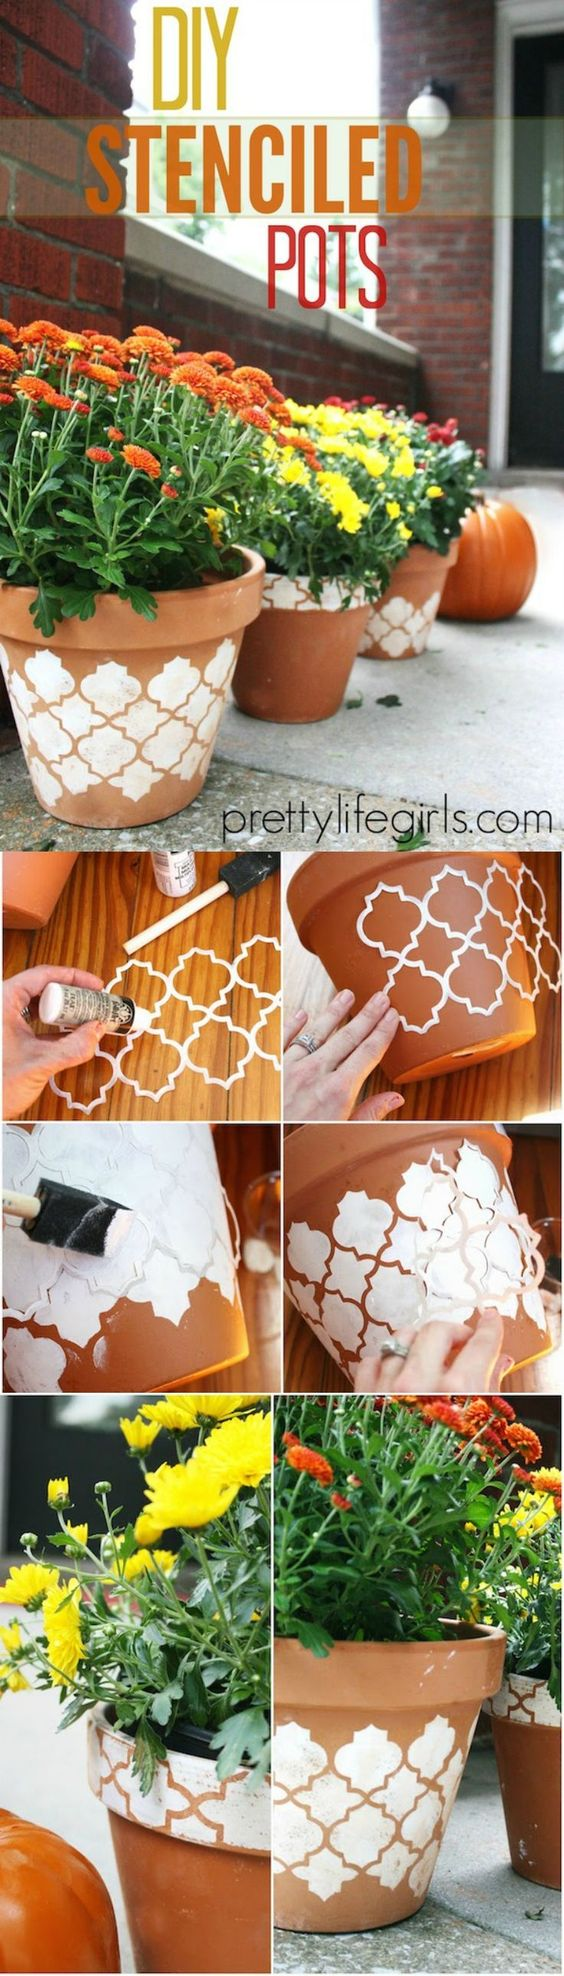 DIY Stenciled Flower Pots